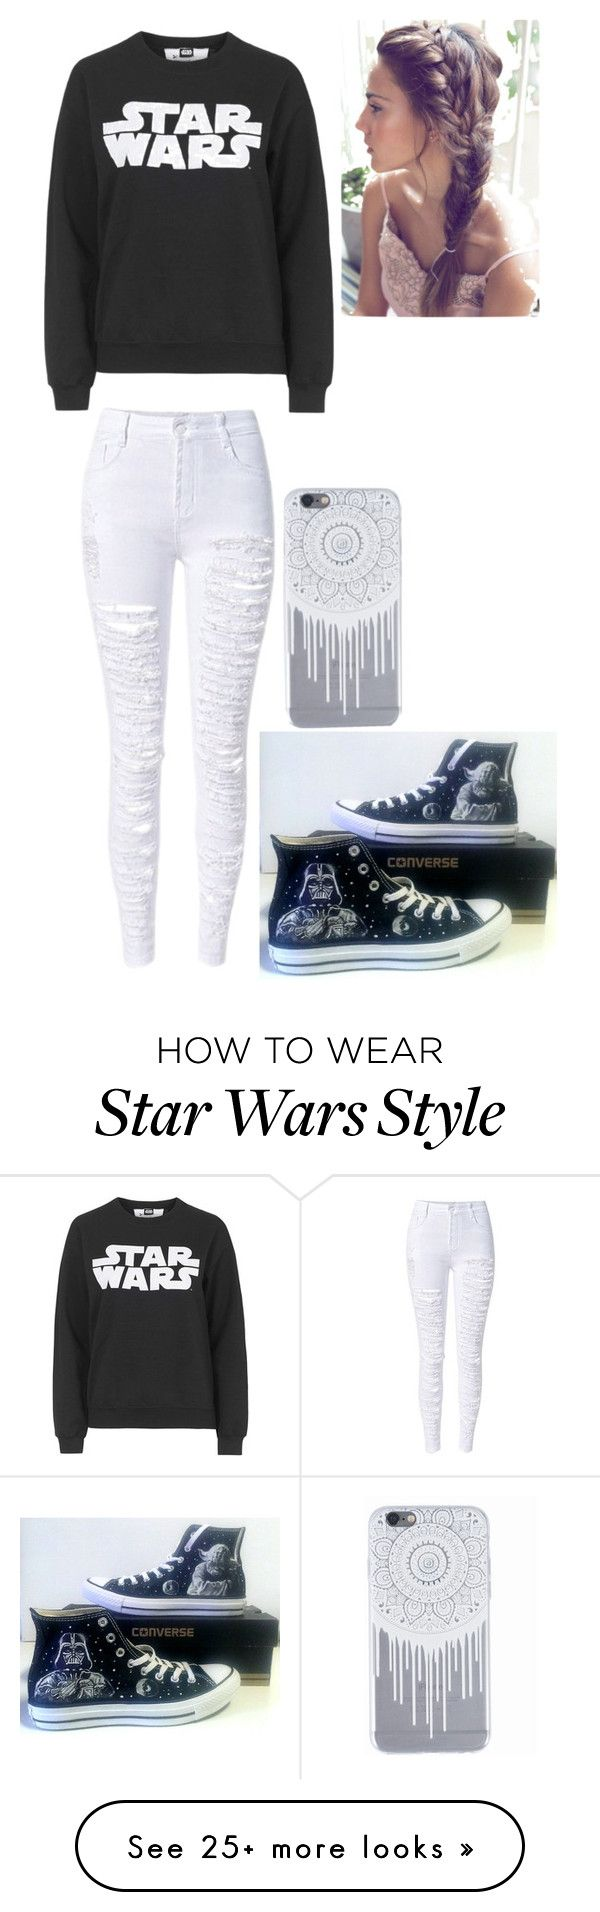 """STAR WARS"" by chimranm on Polyvore featuring Tee and Cake and Converse"